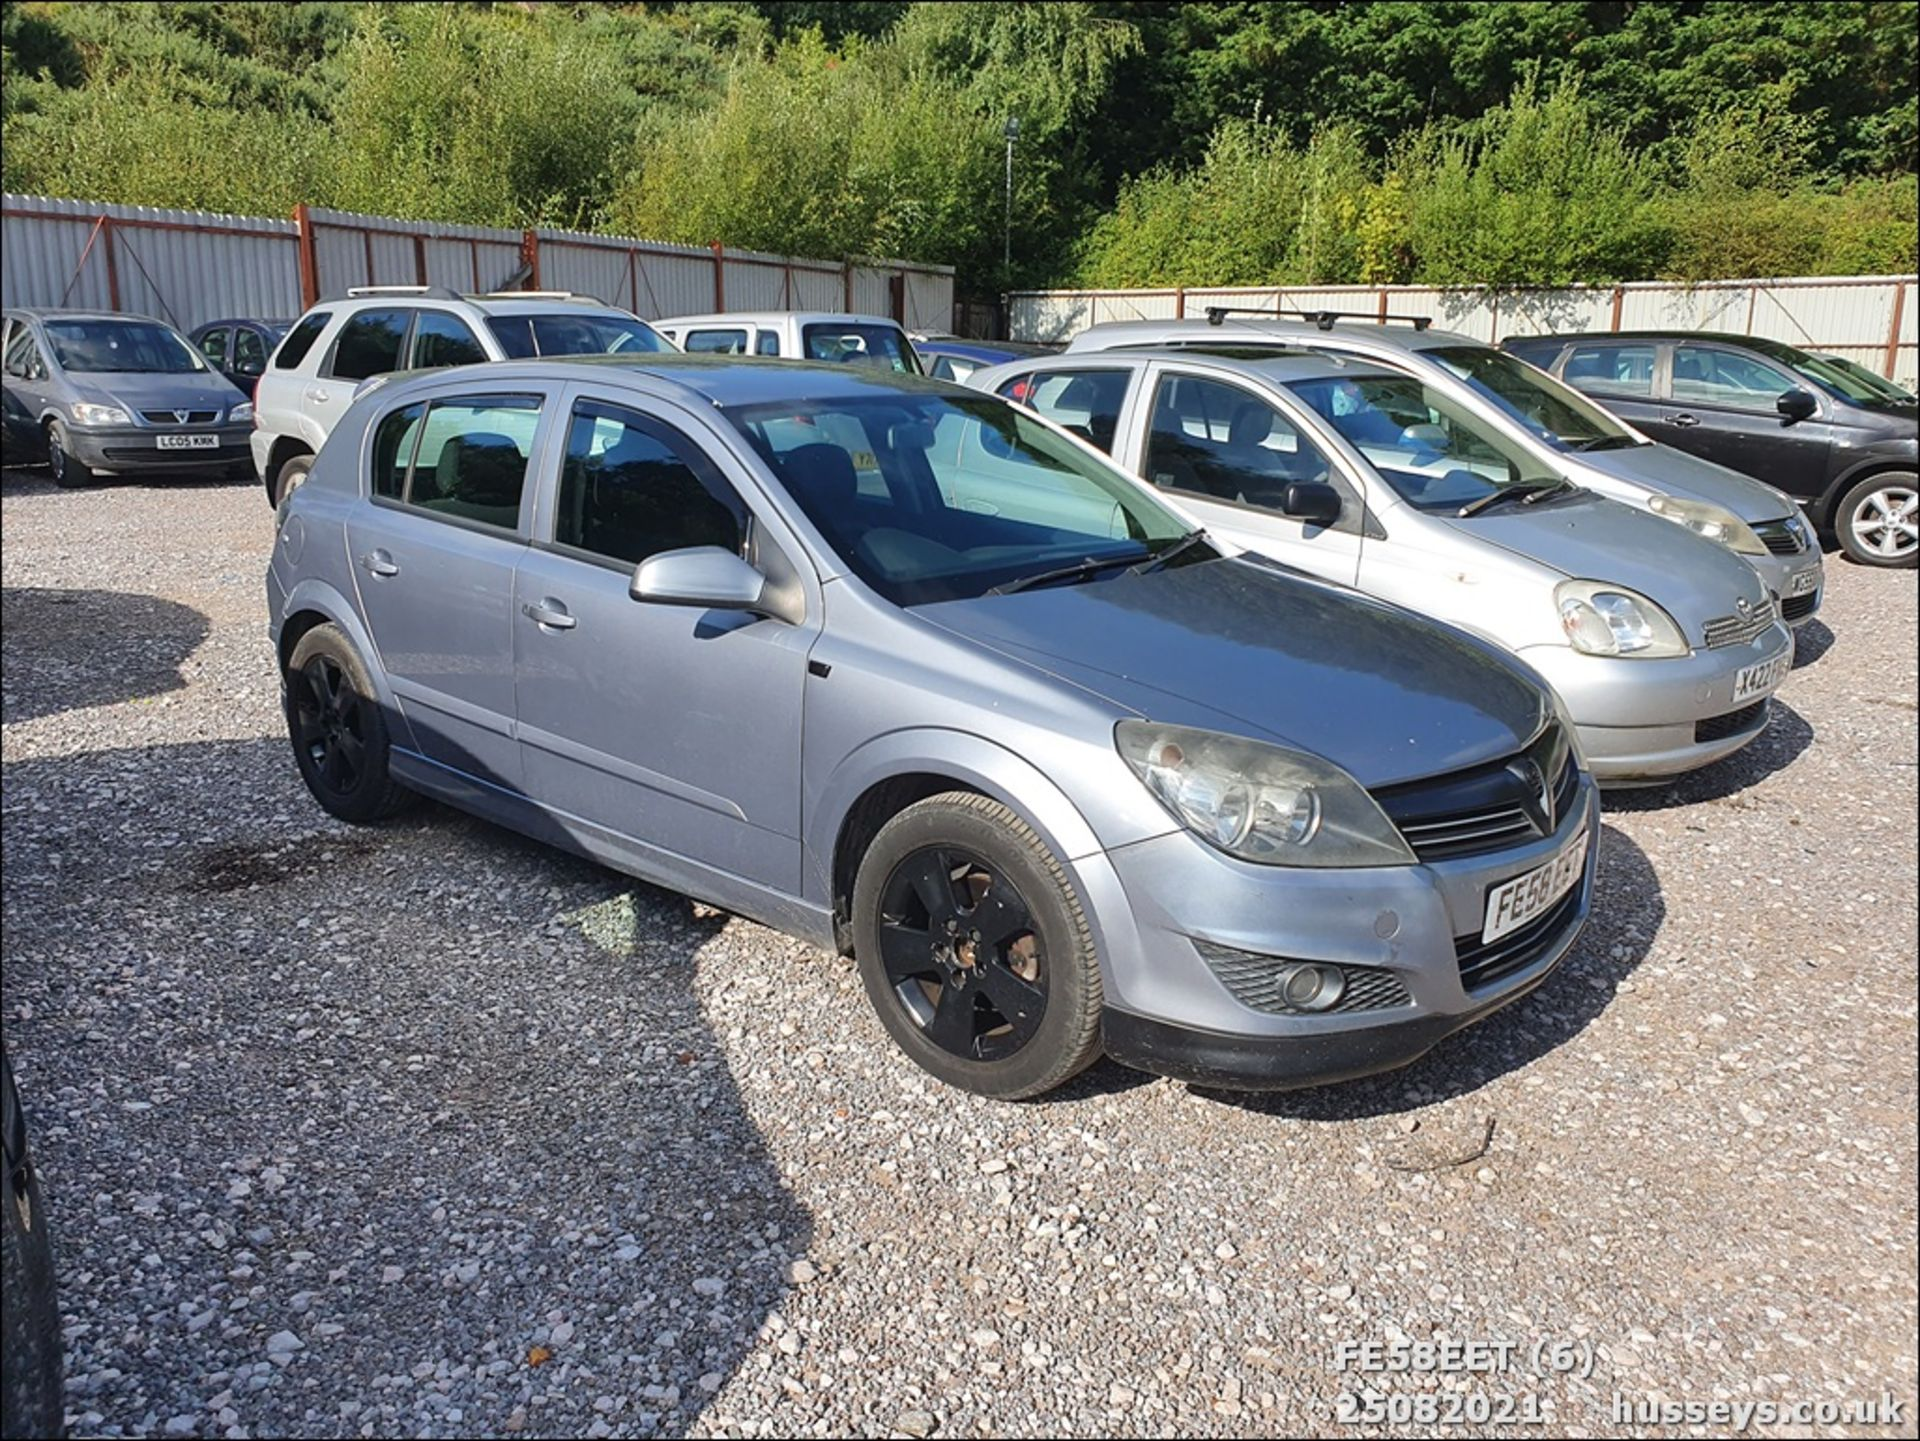 08/58 VAUXHALL ASTRA CLUB CDTI 100 - 1686cc 5dr Hatchback (Silver, 115k) - Image 7 of 15